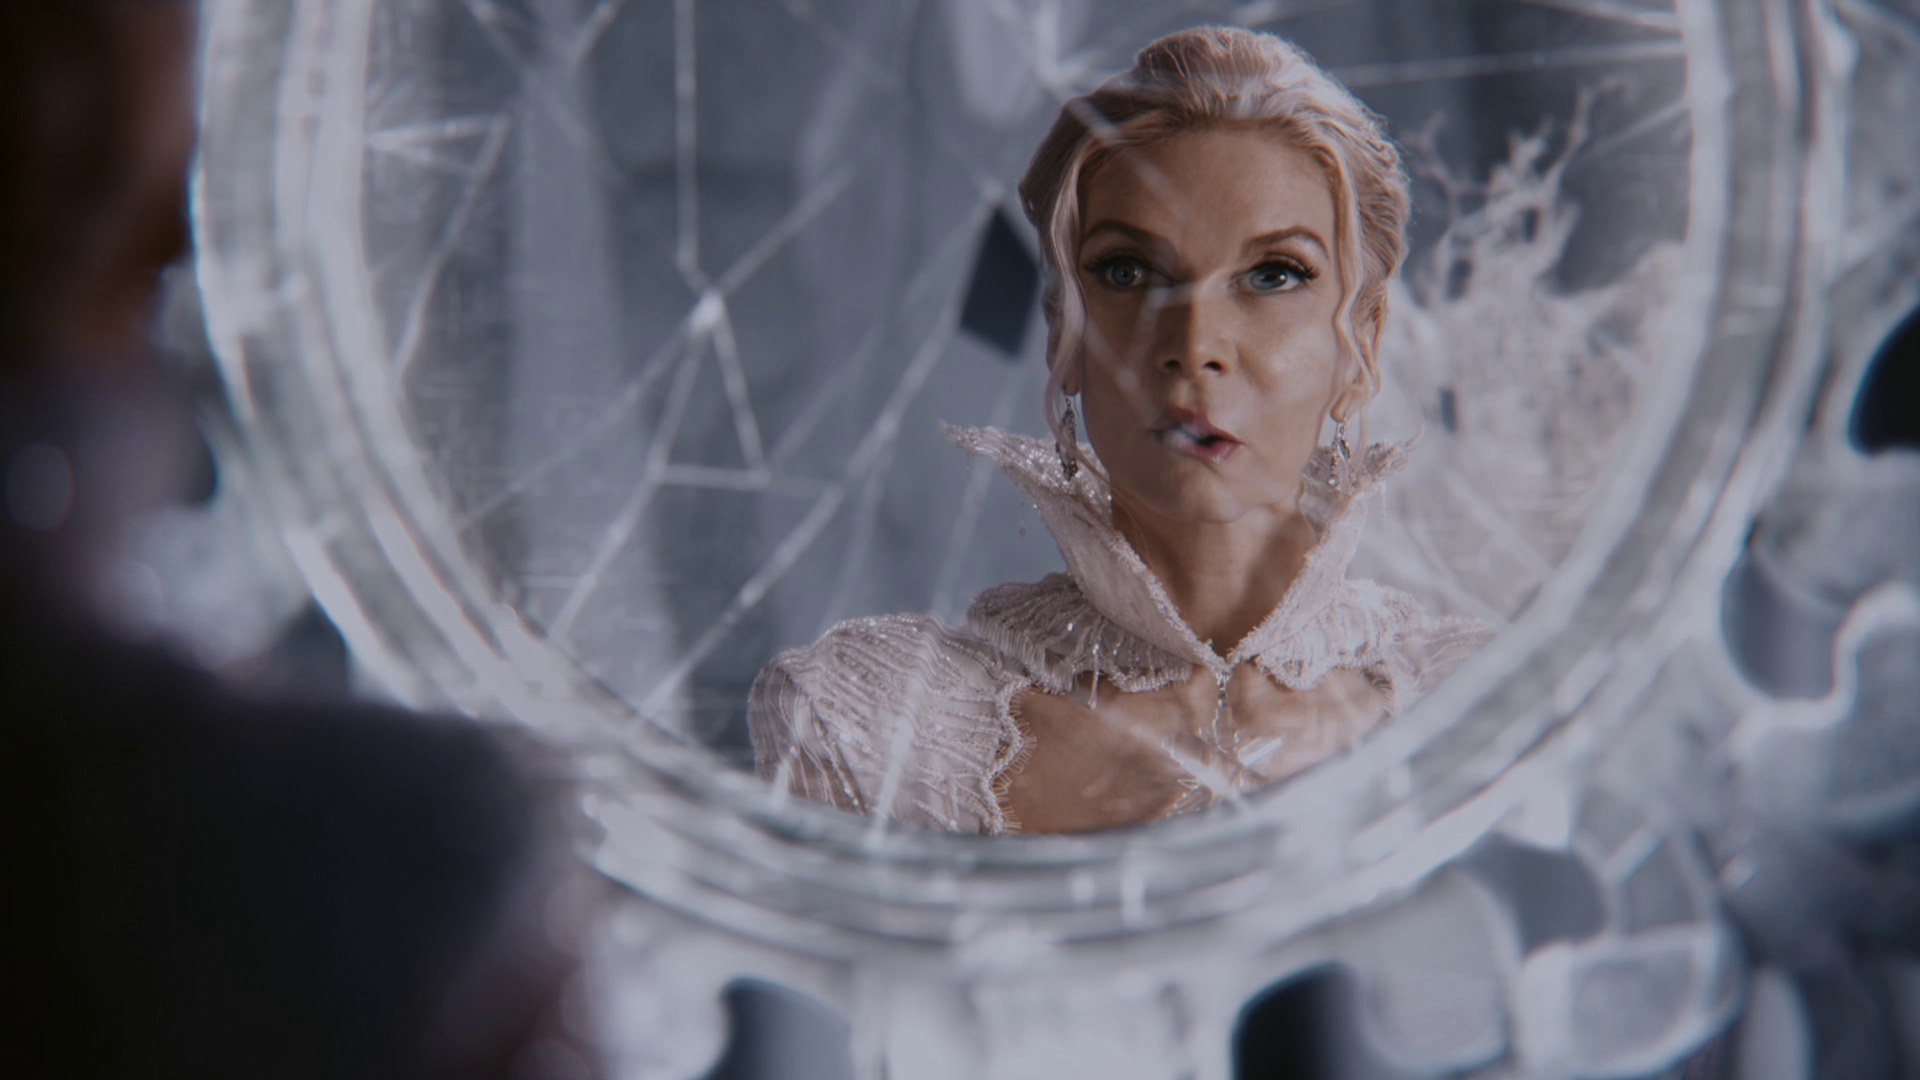 The Snow Queen looks at her broken mirror.